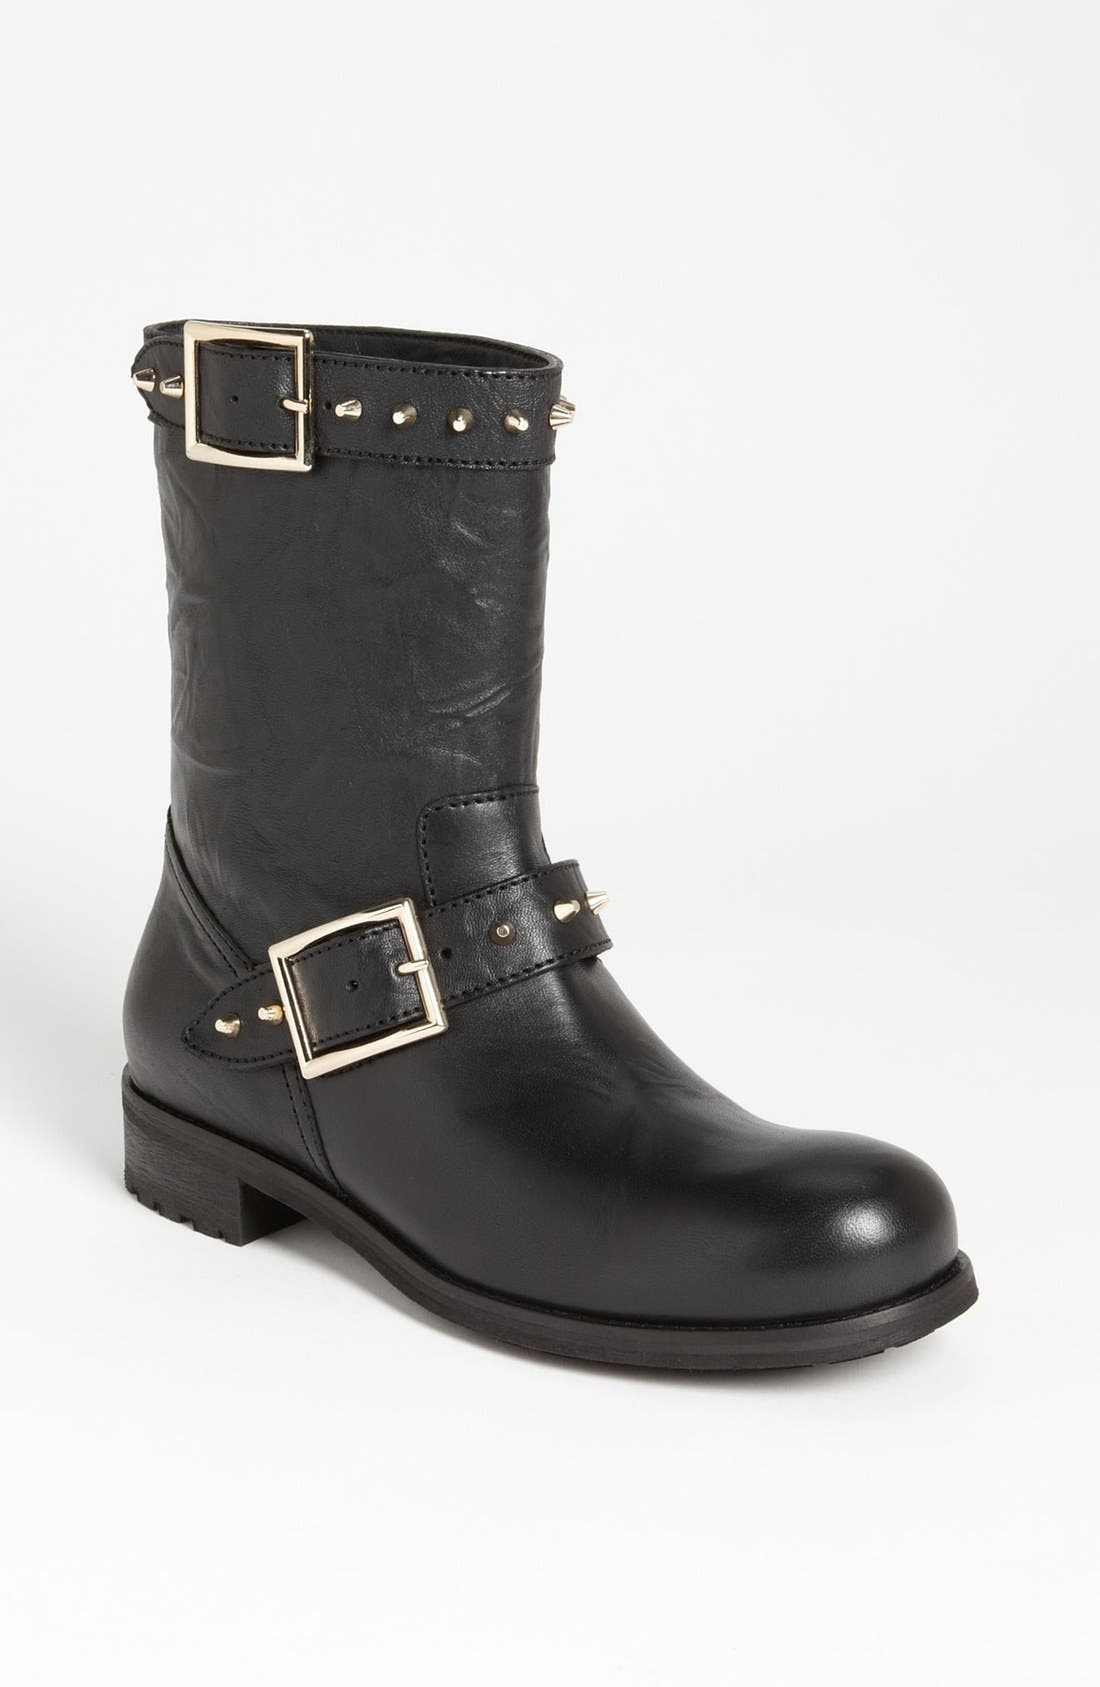 Alternate Image 1 Selected - Jimmy Choo 'Dash' Stud Biker Boot